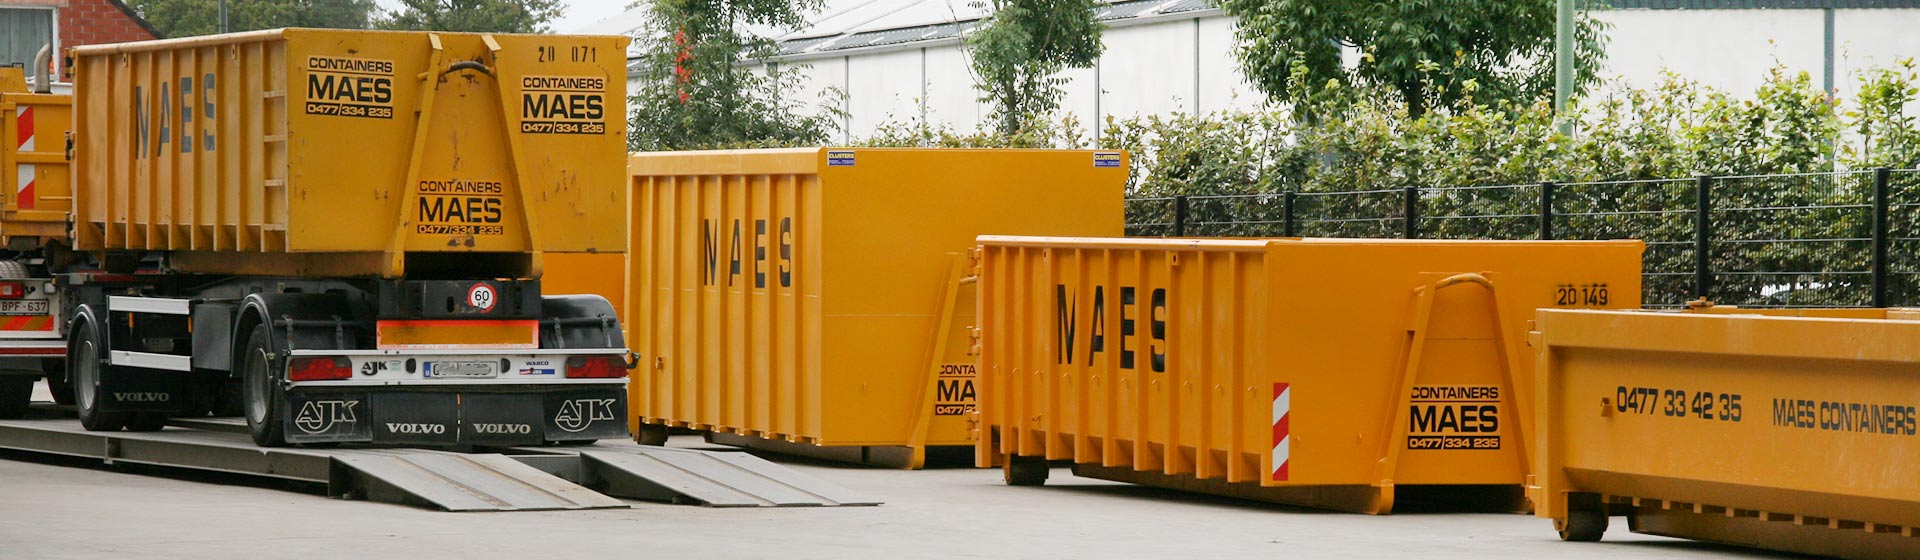 Containers Maes2